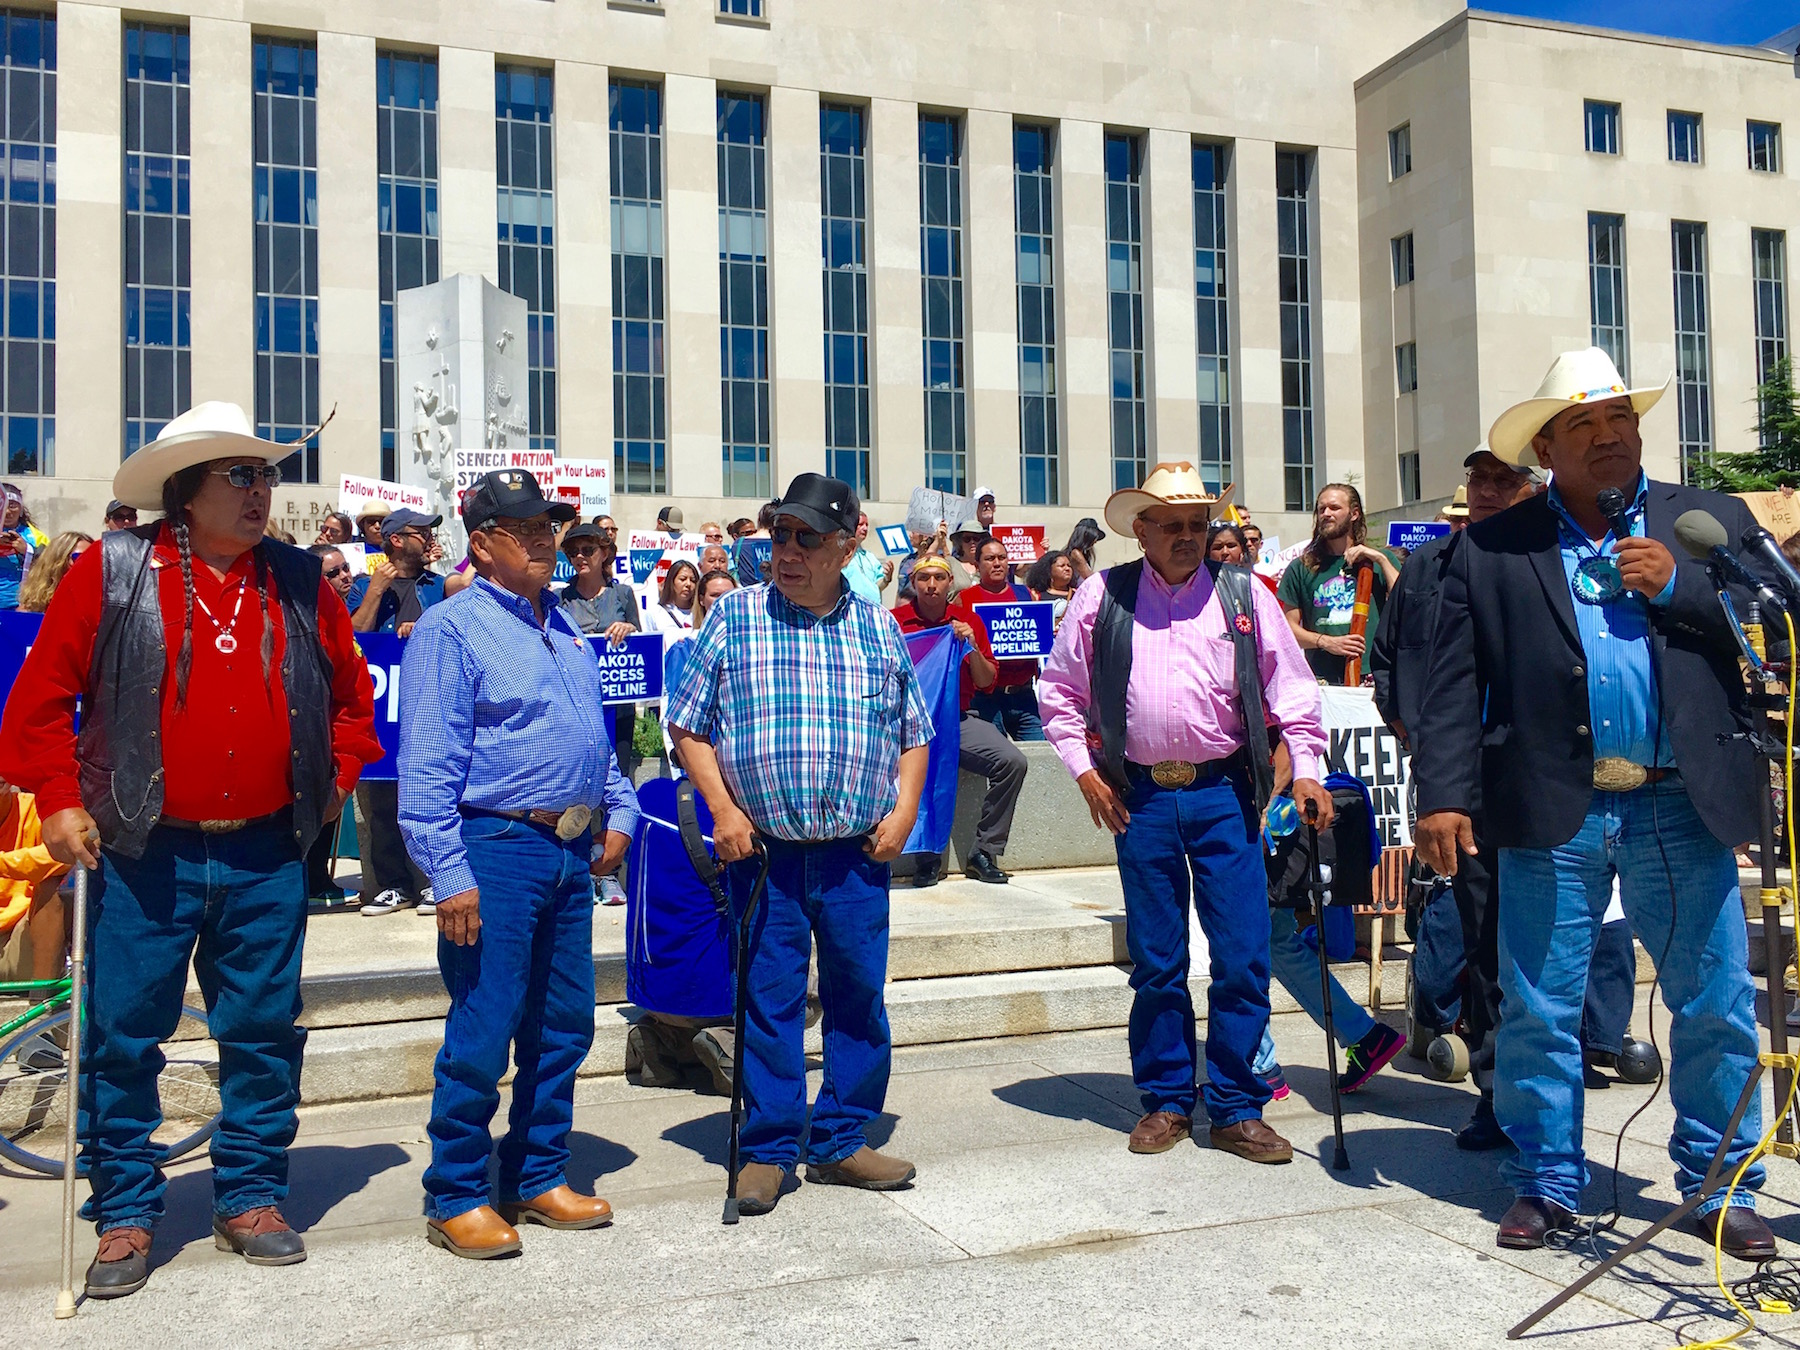 Cheyenne River Sioux Tribe presses President Obama on Dakota Access Pipeline